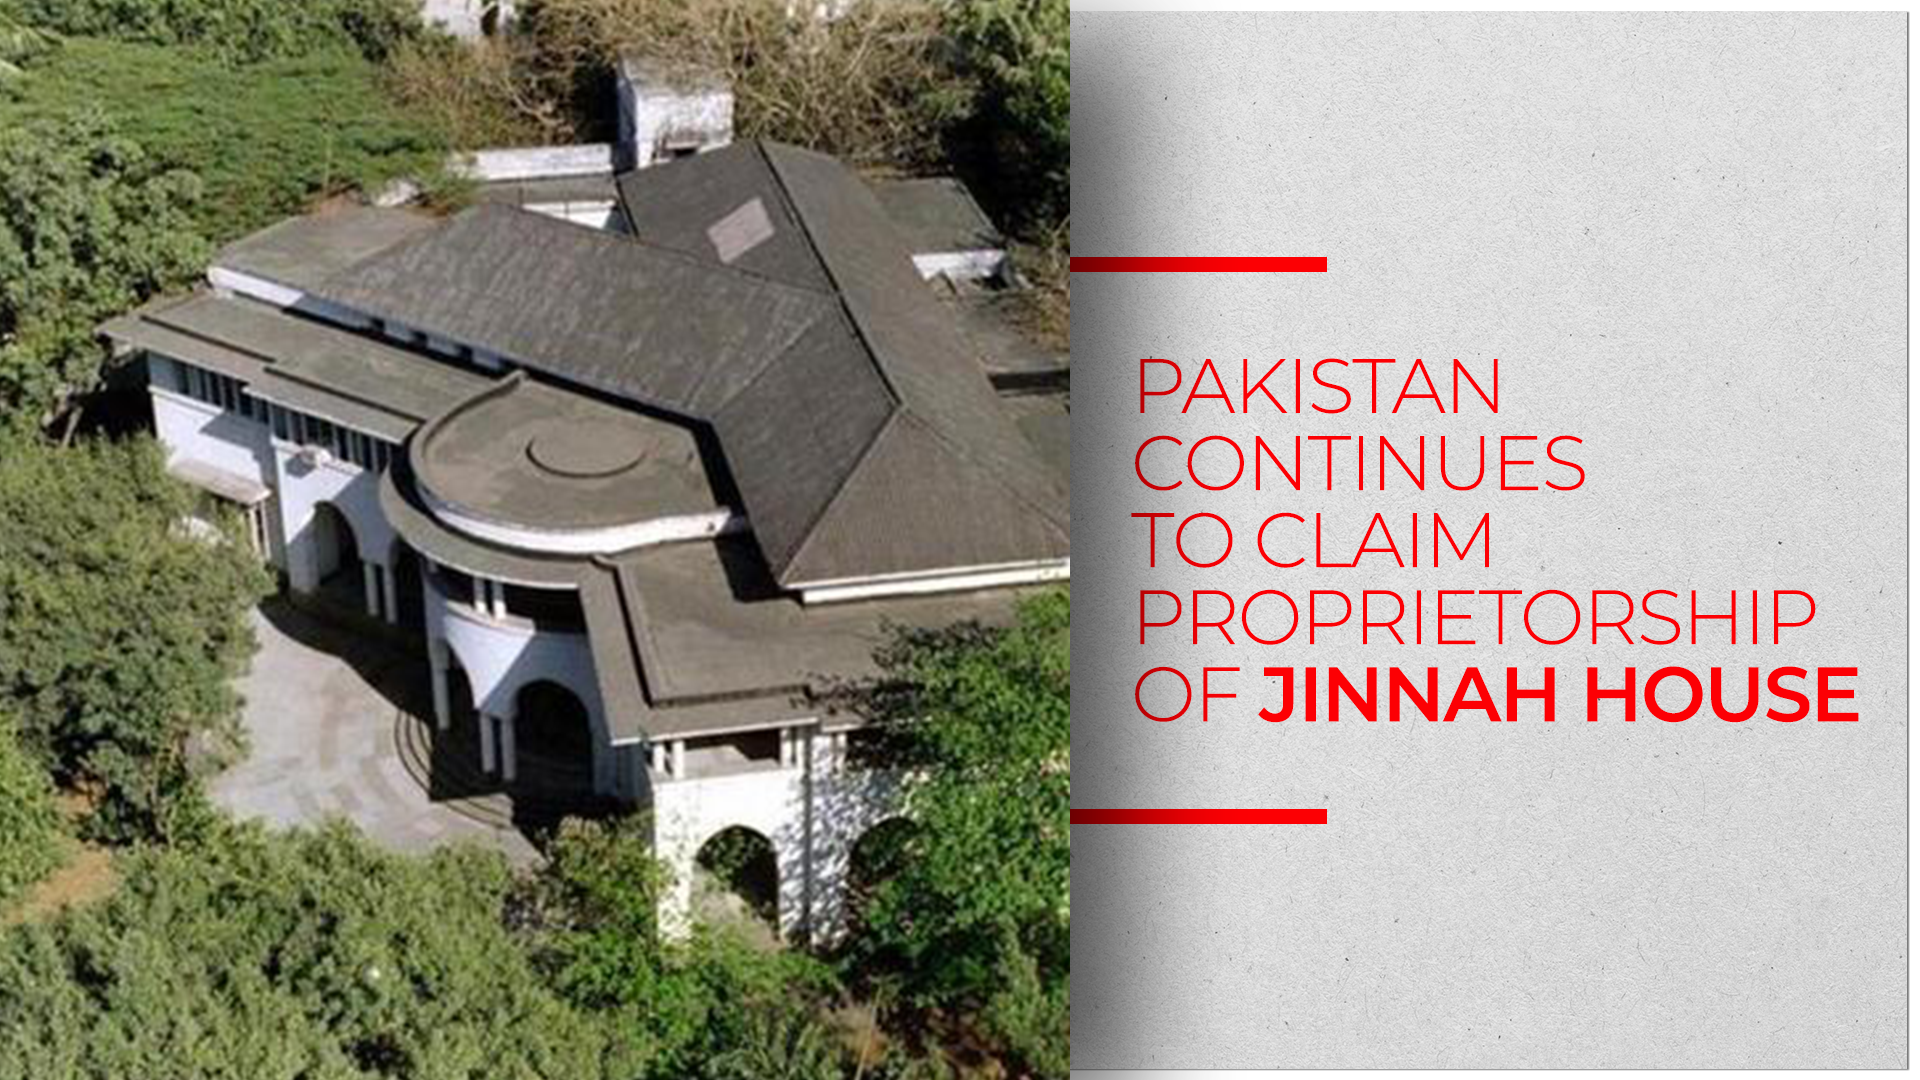 Indian MEA Quashes Pakistan's Ownership Claims On Jinnah House